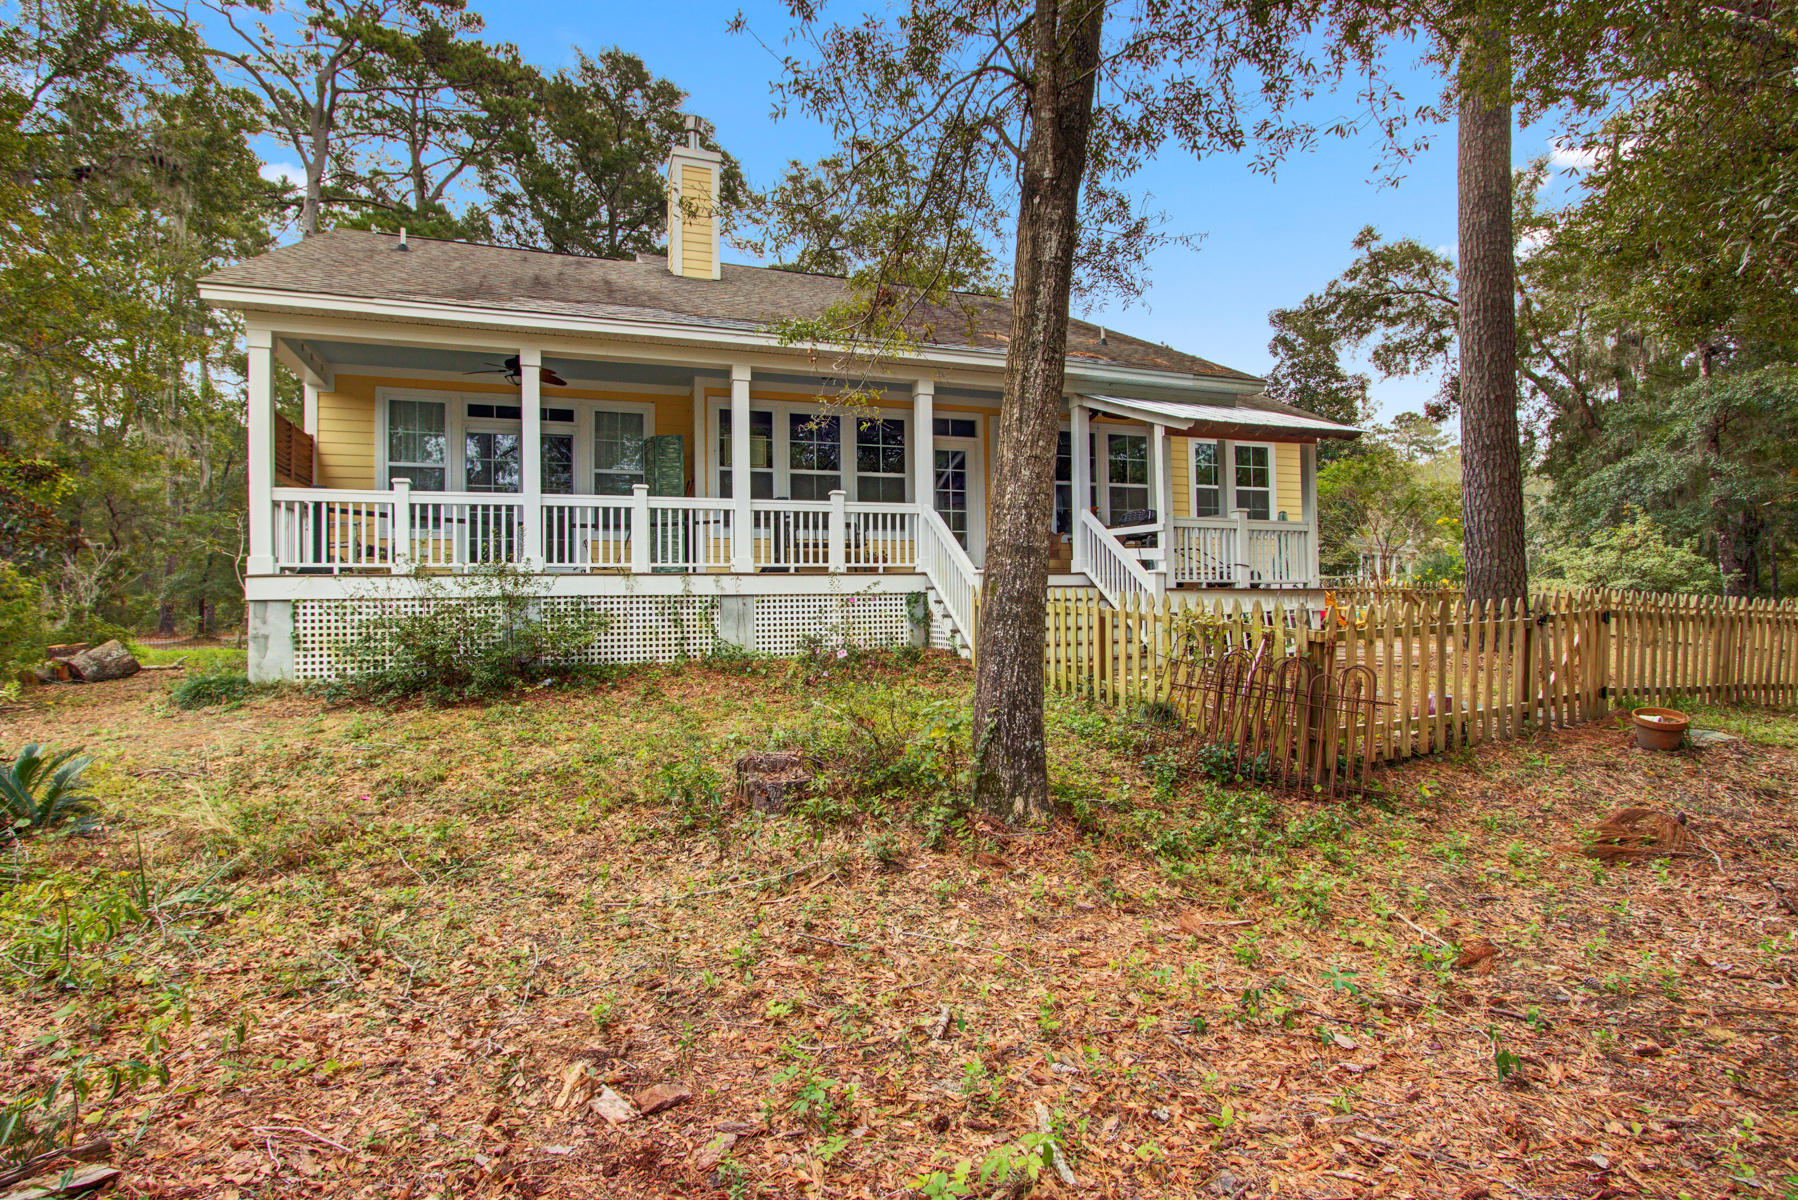 Hickory Hill Estates Homes For Sale - 3339 Hickory Hill, Johns Island, SC - 8